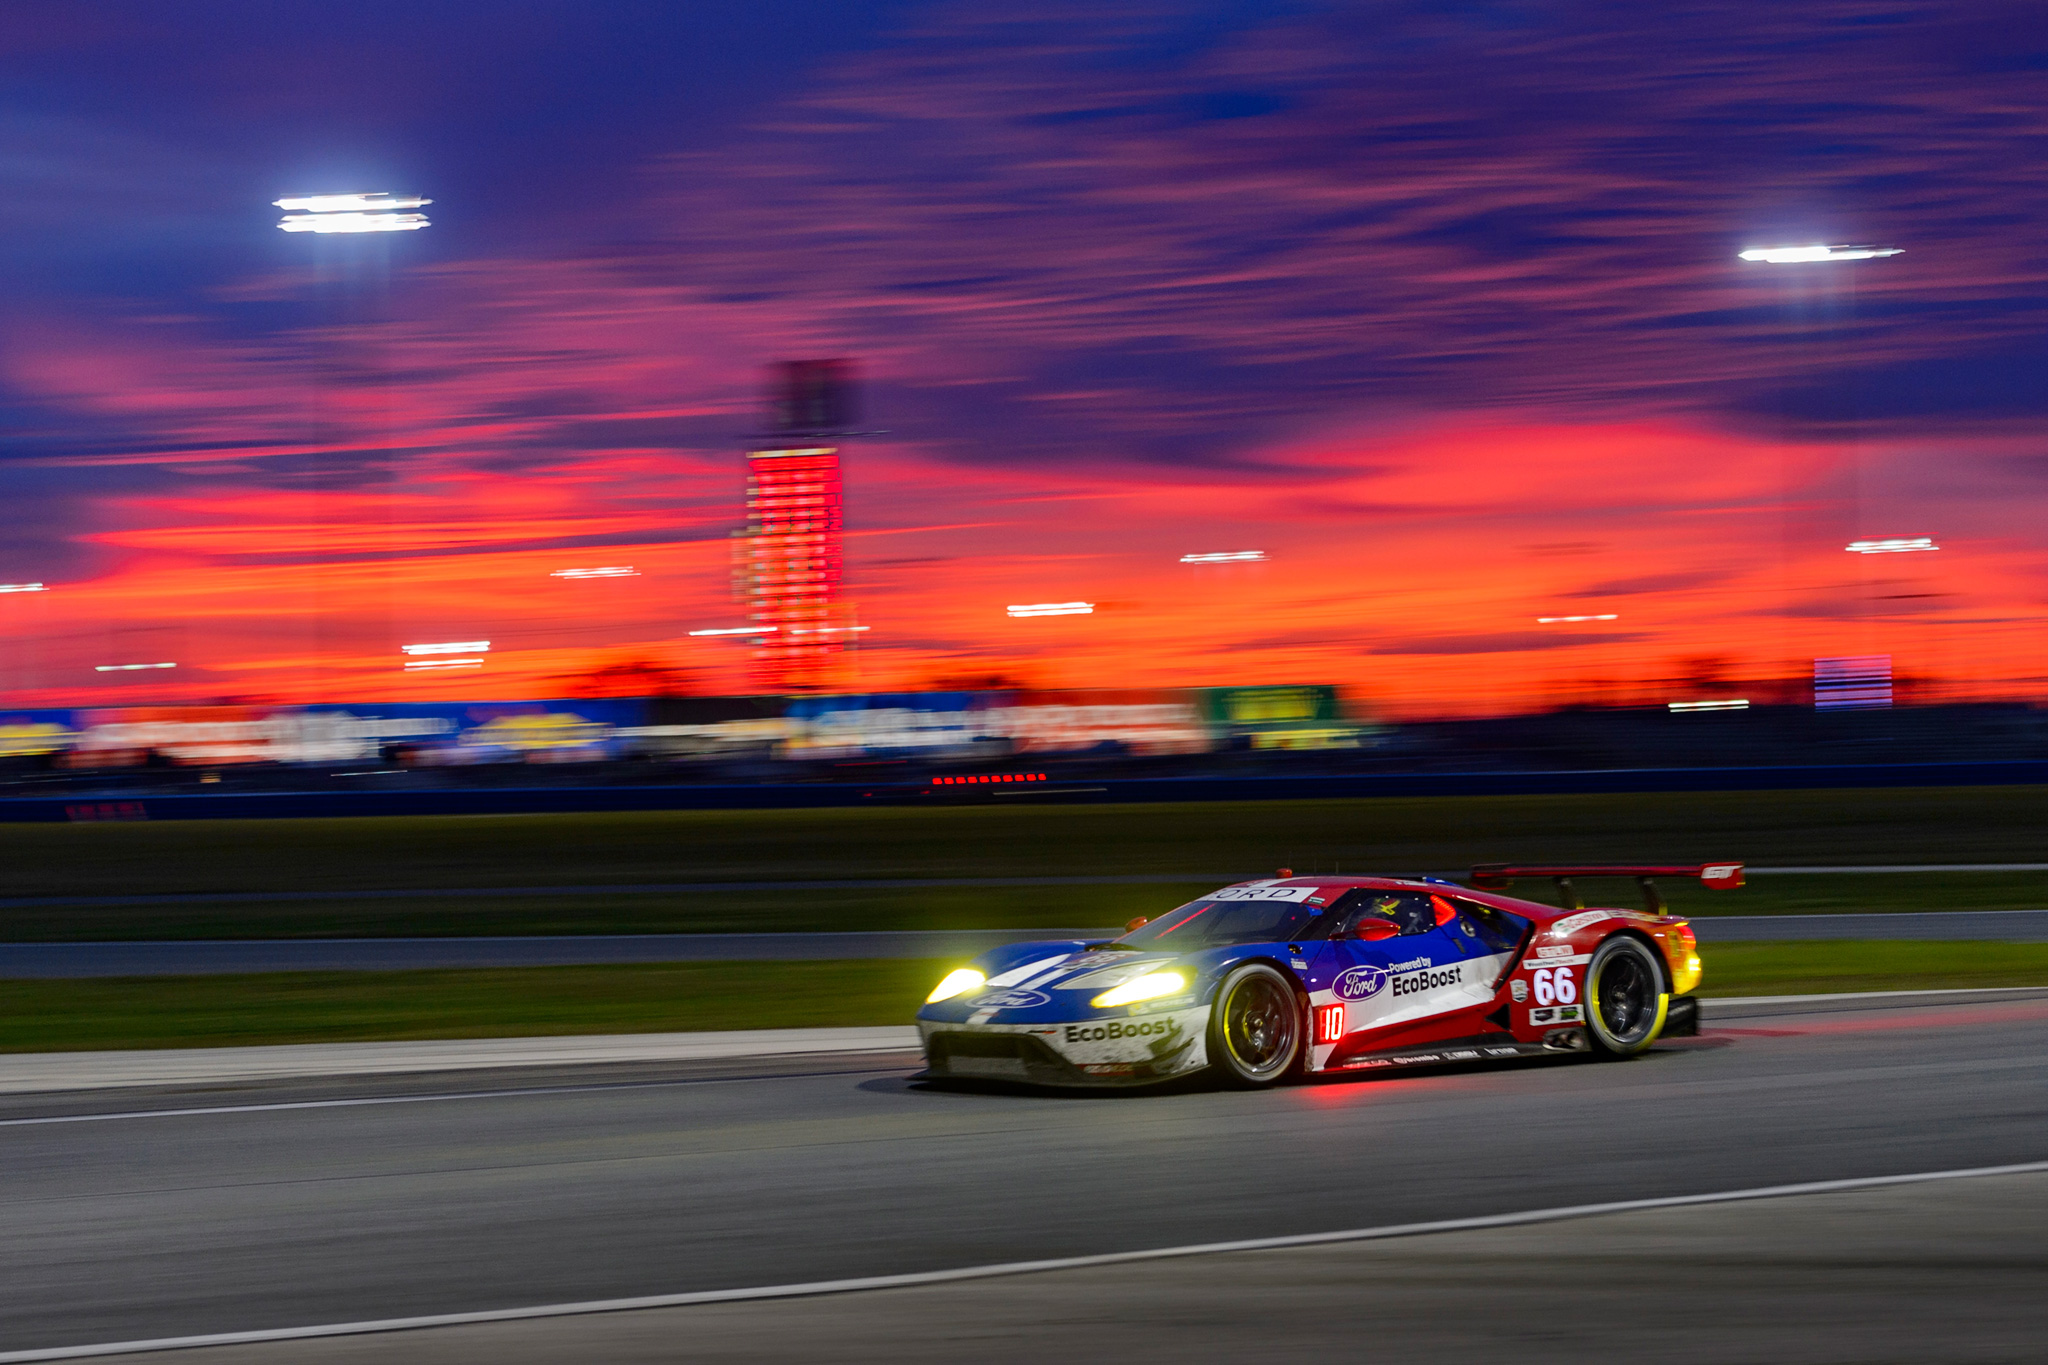 Dirk Müller with the Ford GT premiere in Daytona in 7th place